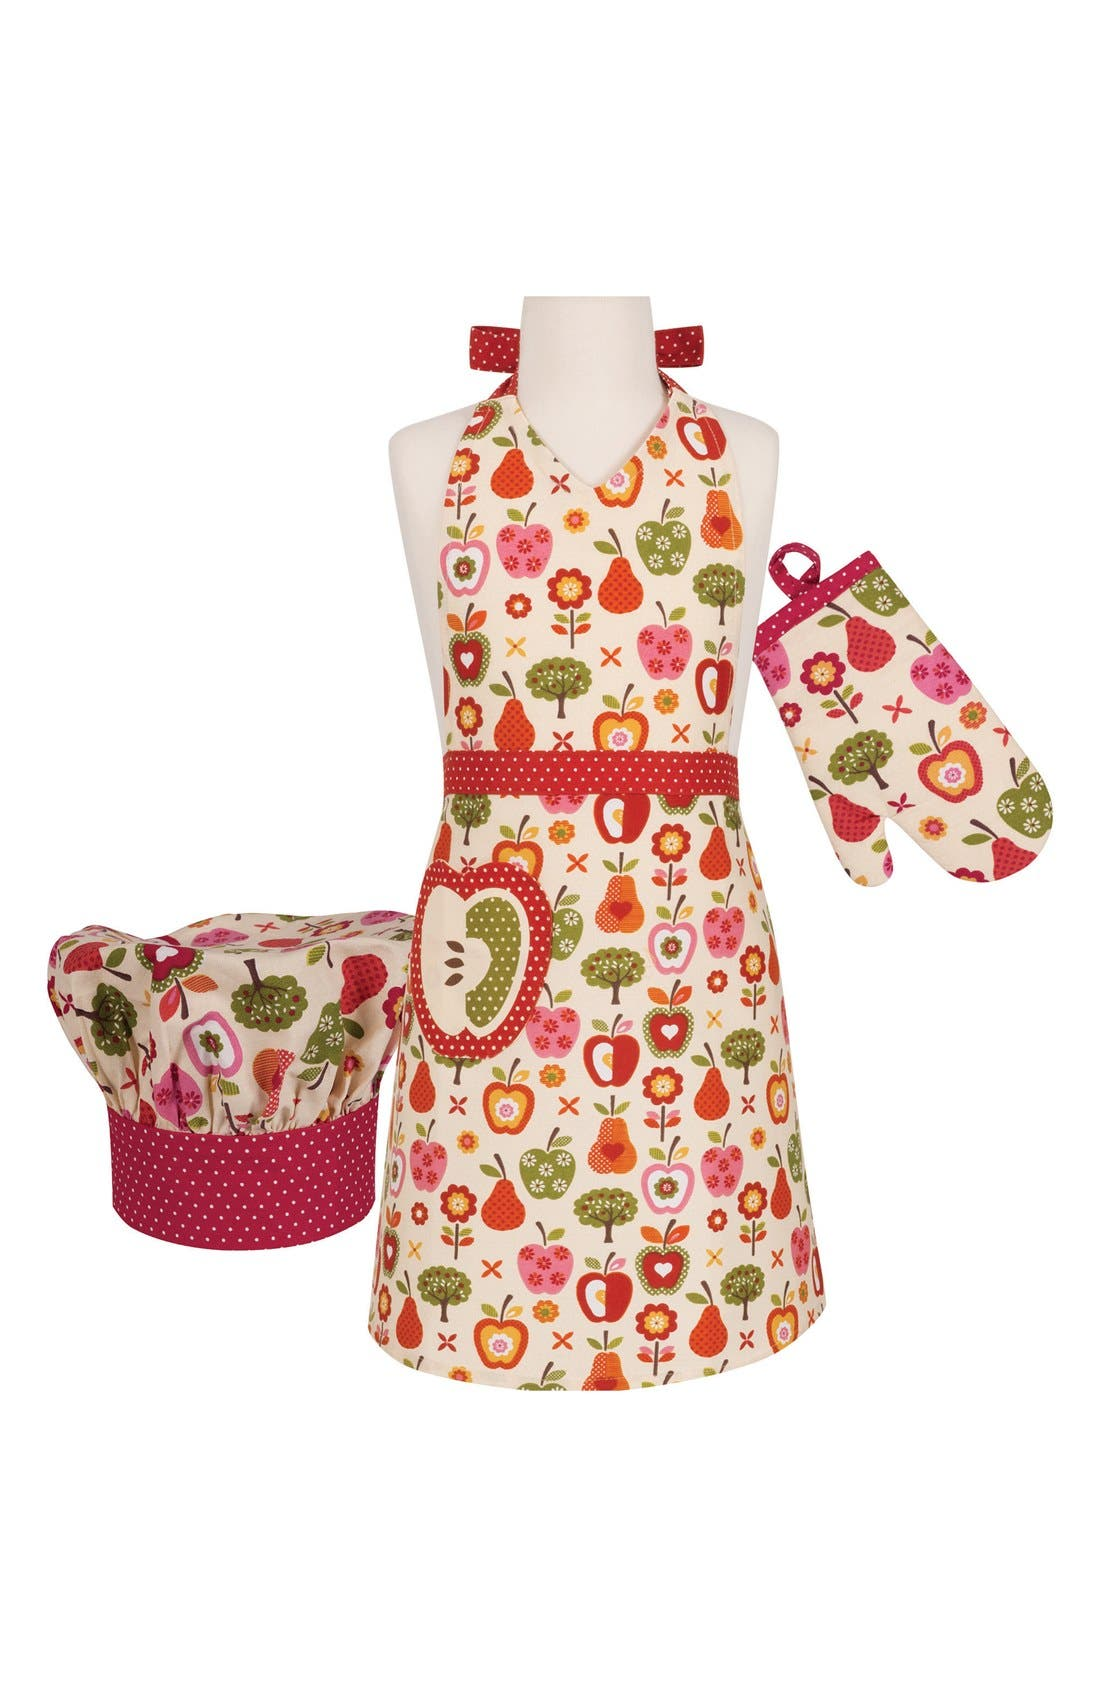 HANDSTAND KITCHEN Apple a Day Apron, Chef's Hat